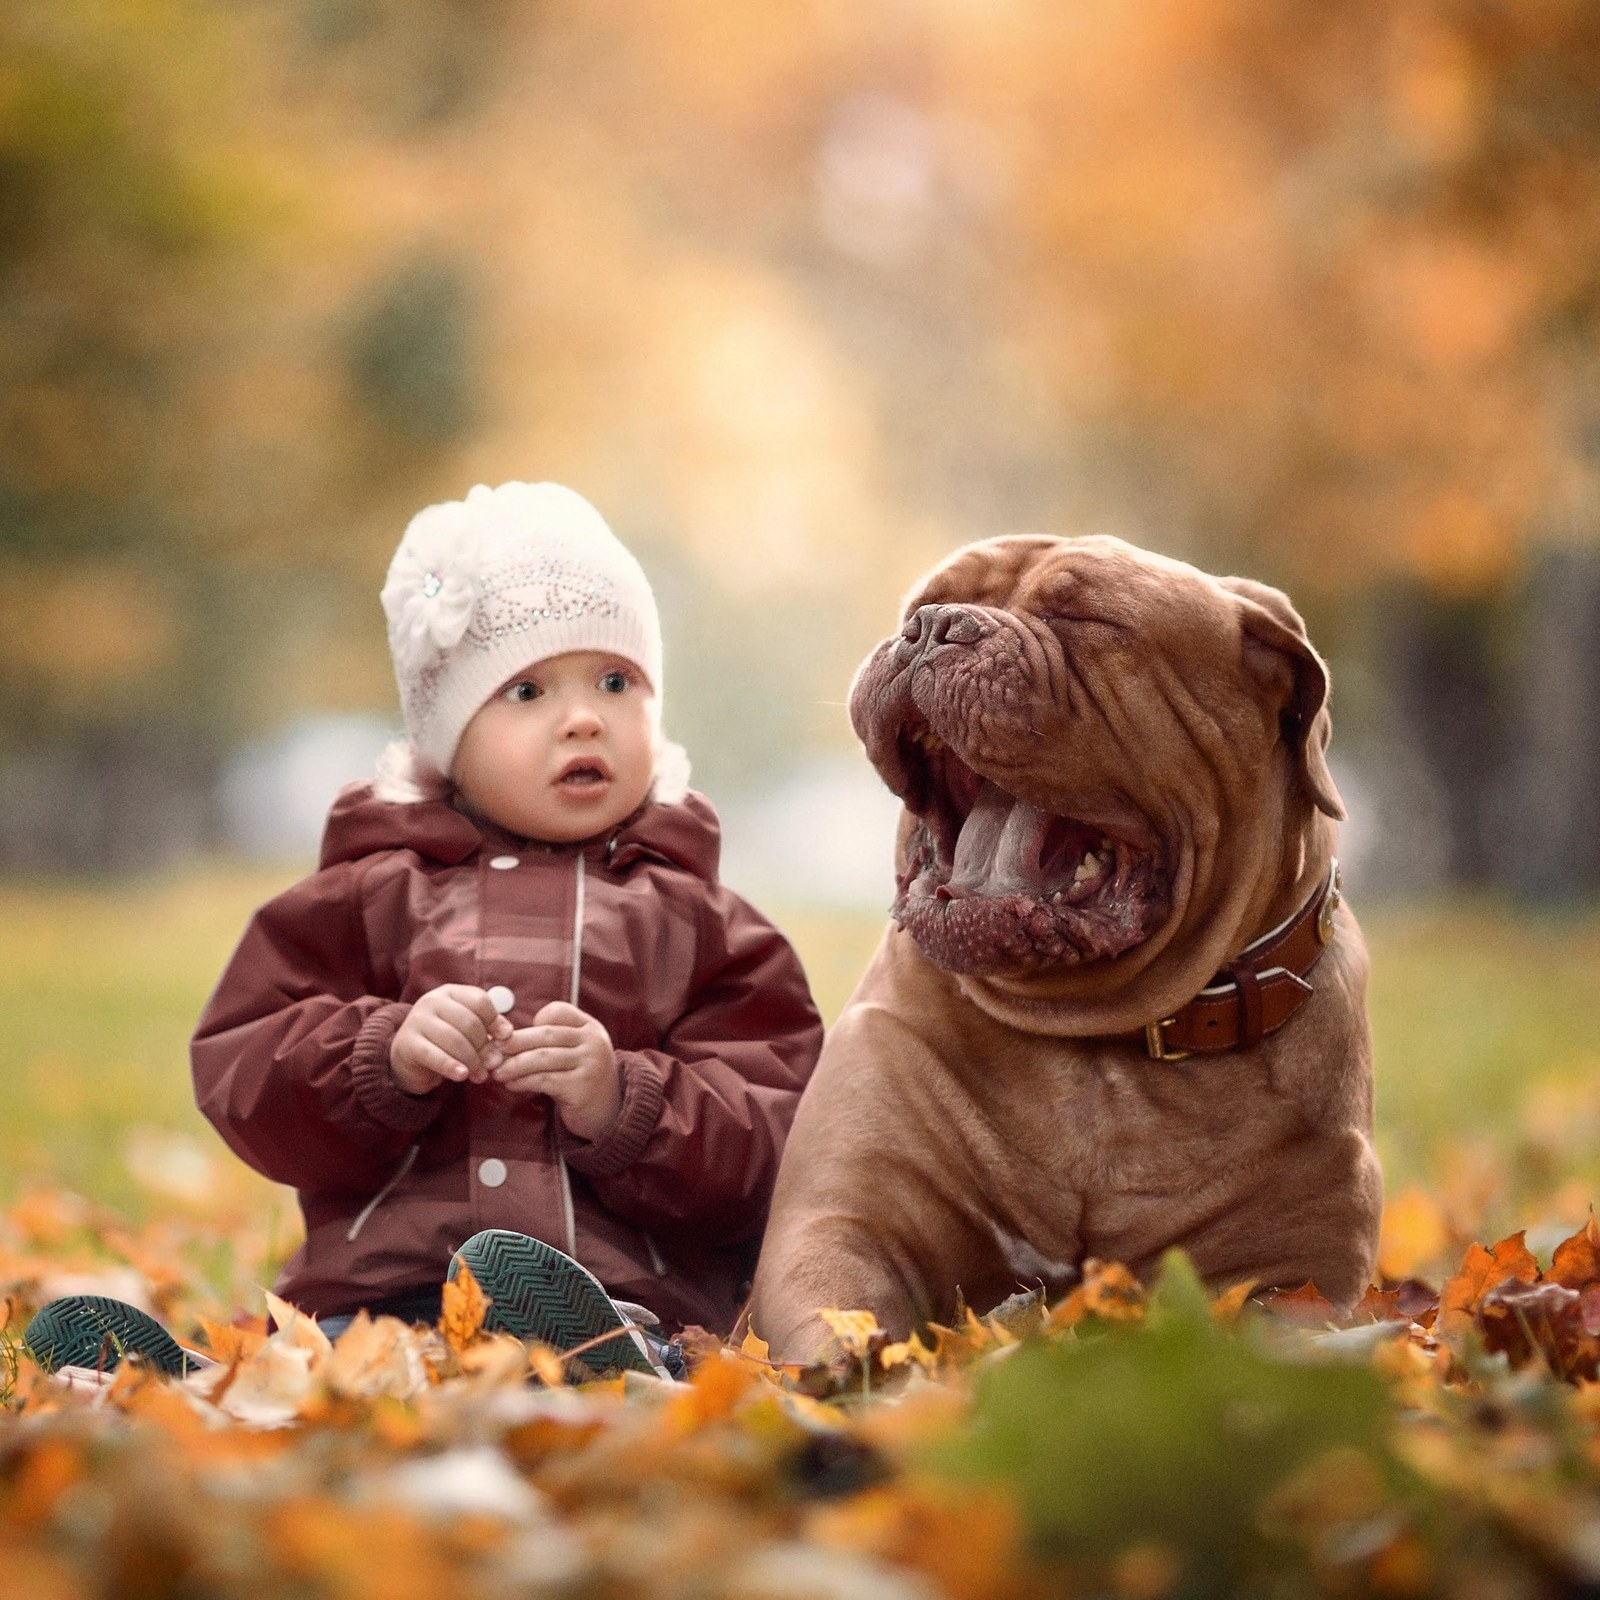 You'll Never See Anything As Adorable As These Little Kids With Big Dogs